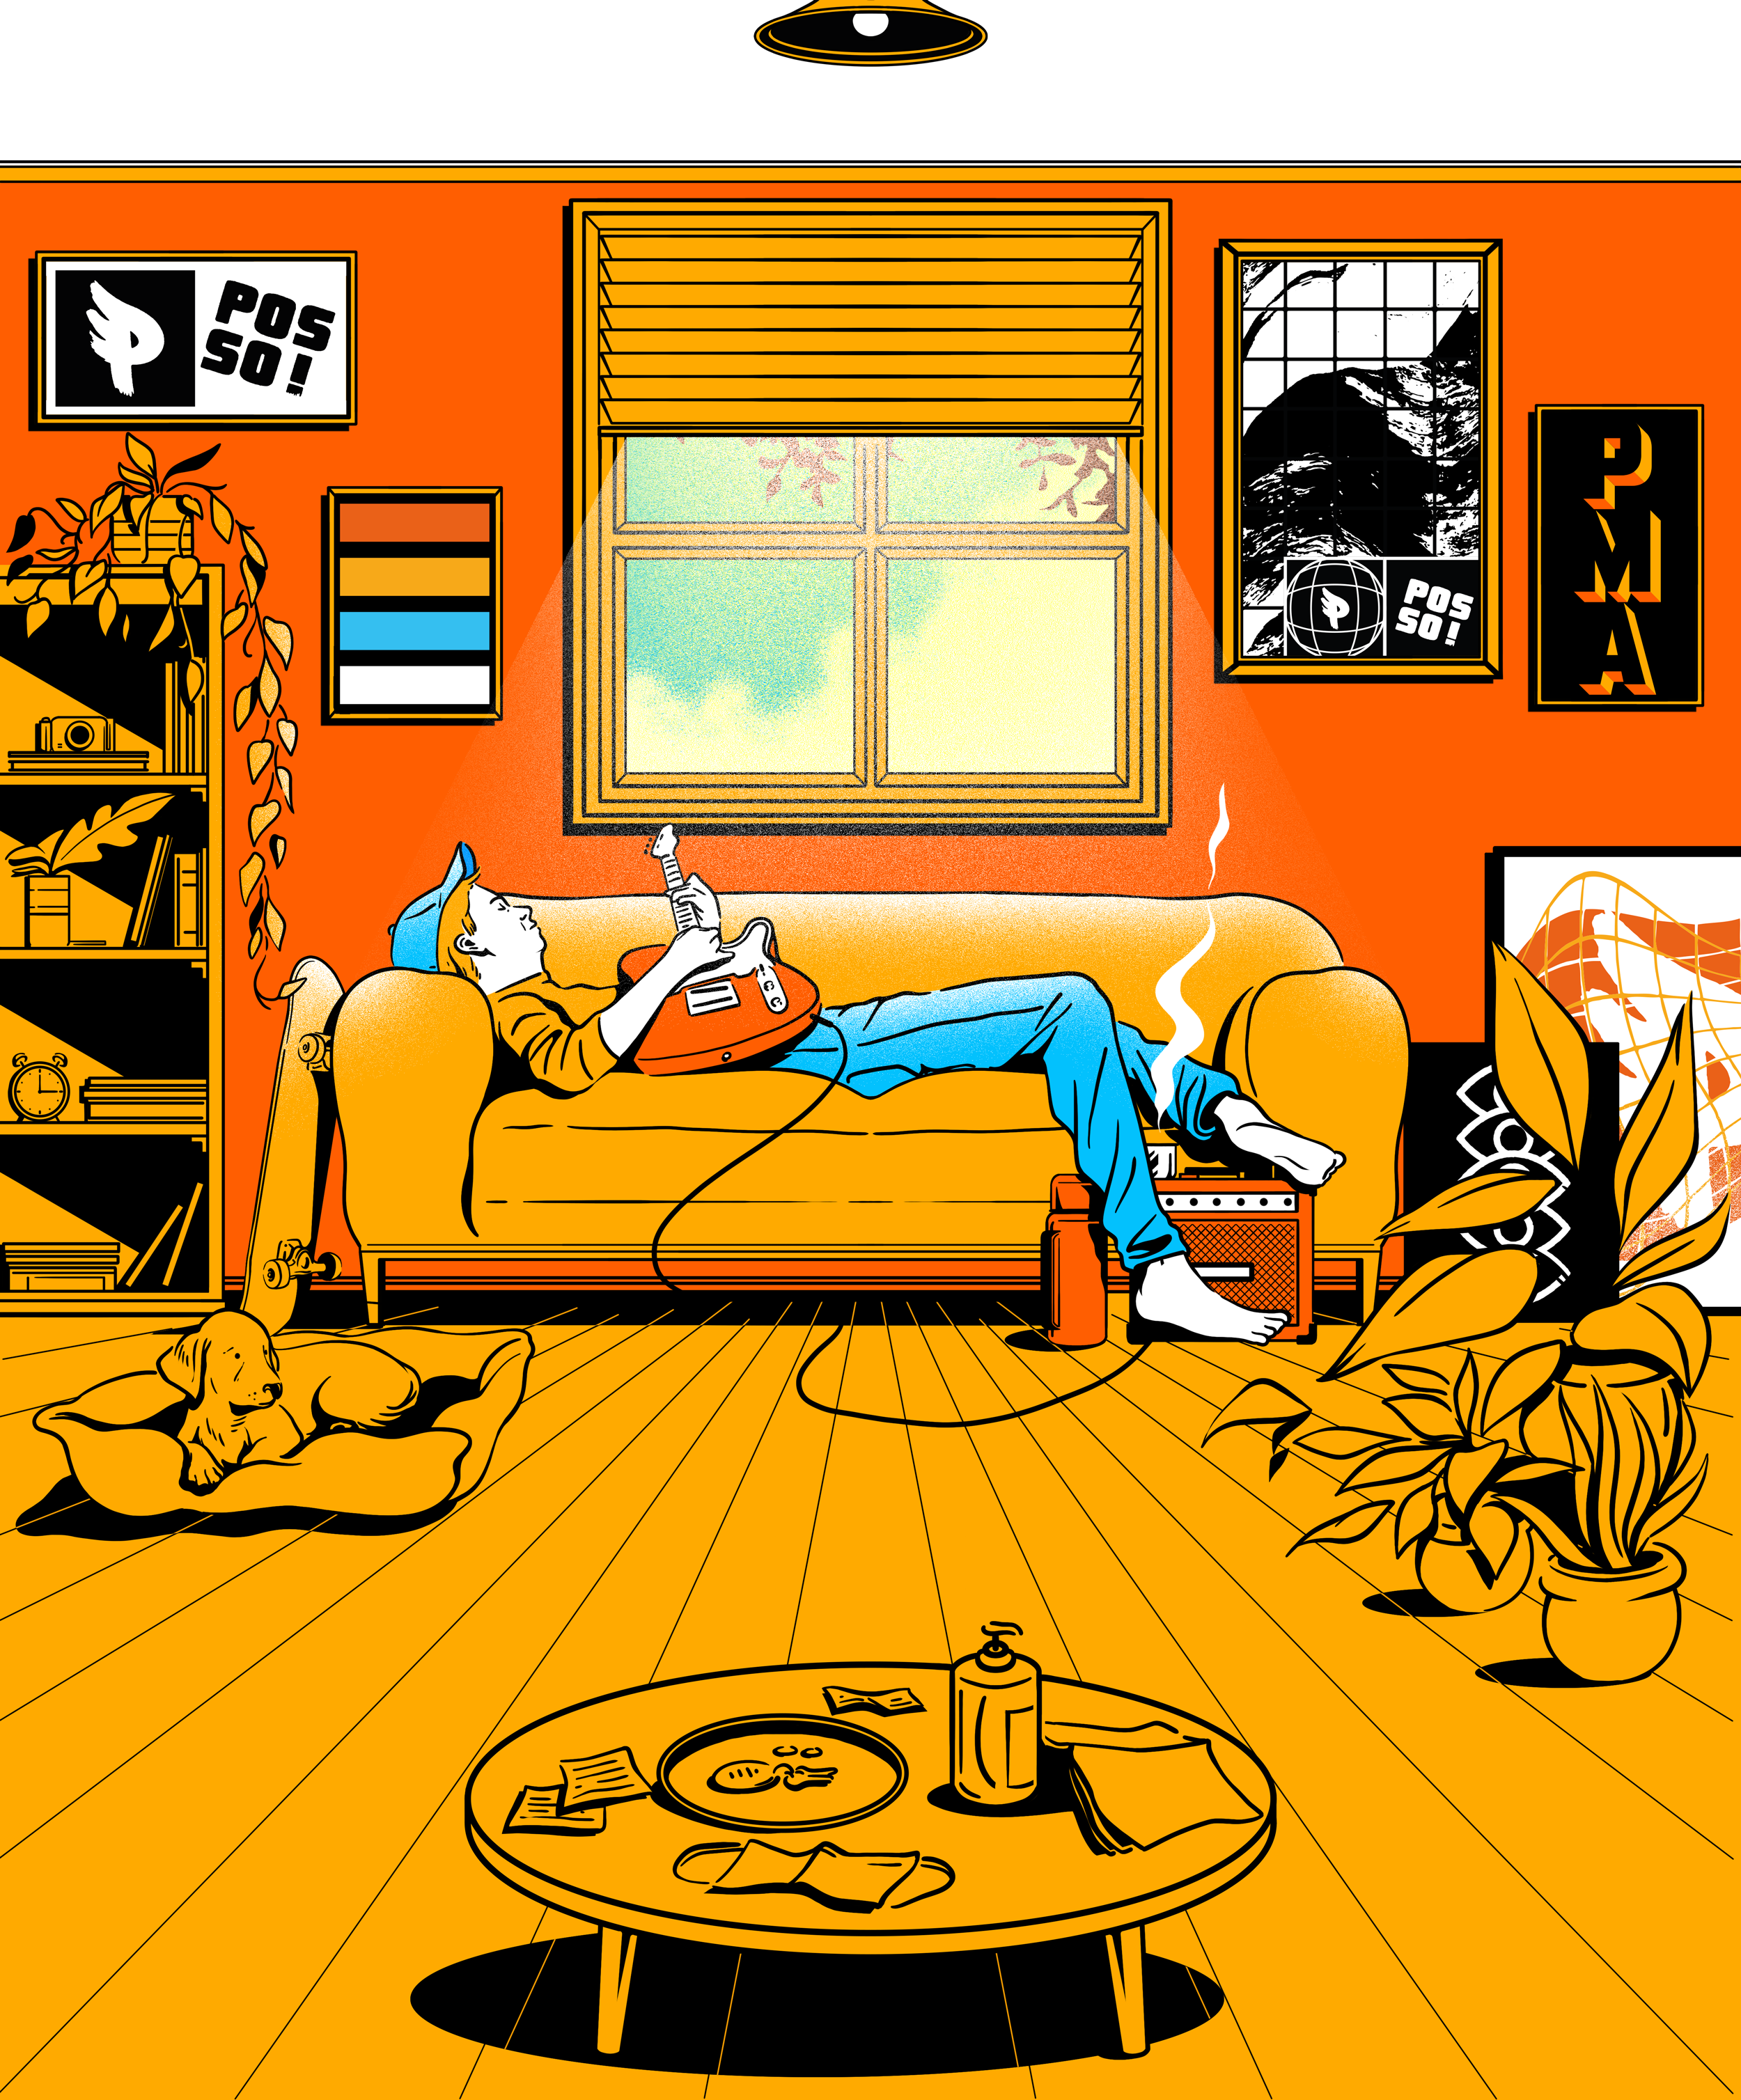 artistique_gustavo_magalhaes_covid_home_dog_house_chill_guitar_couch_window_light.png